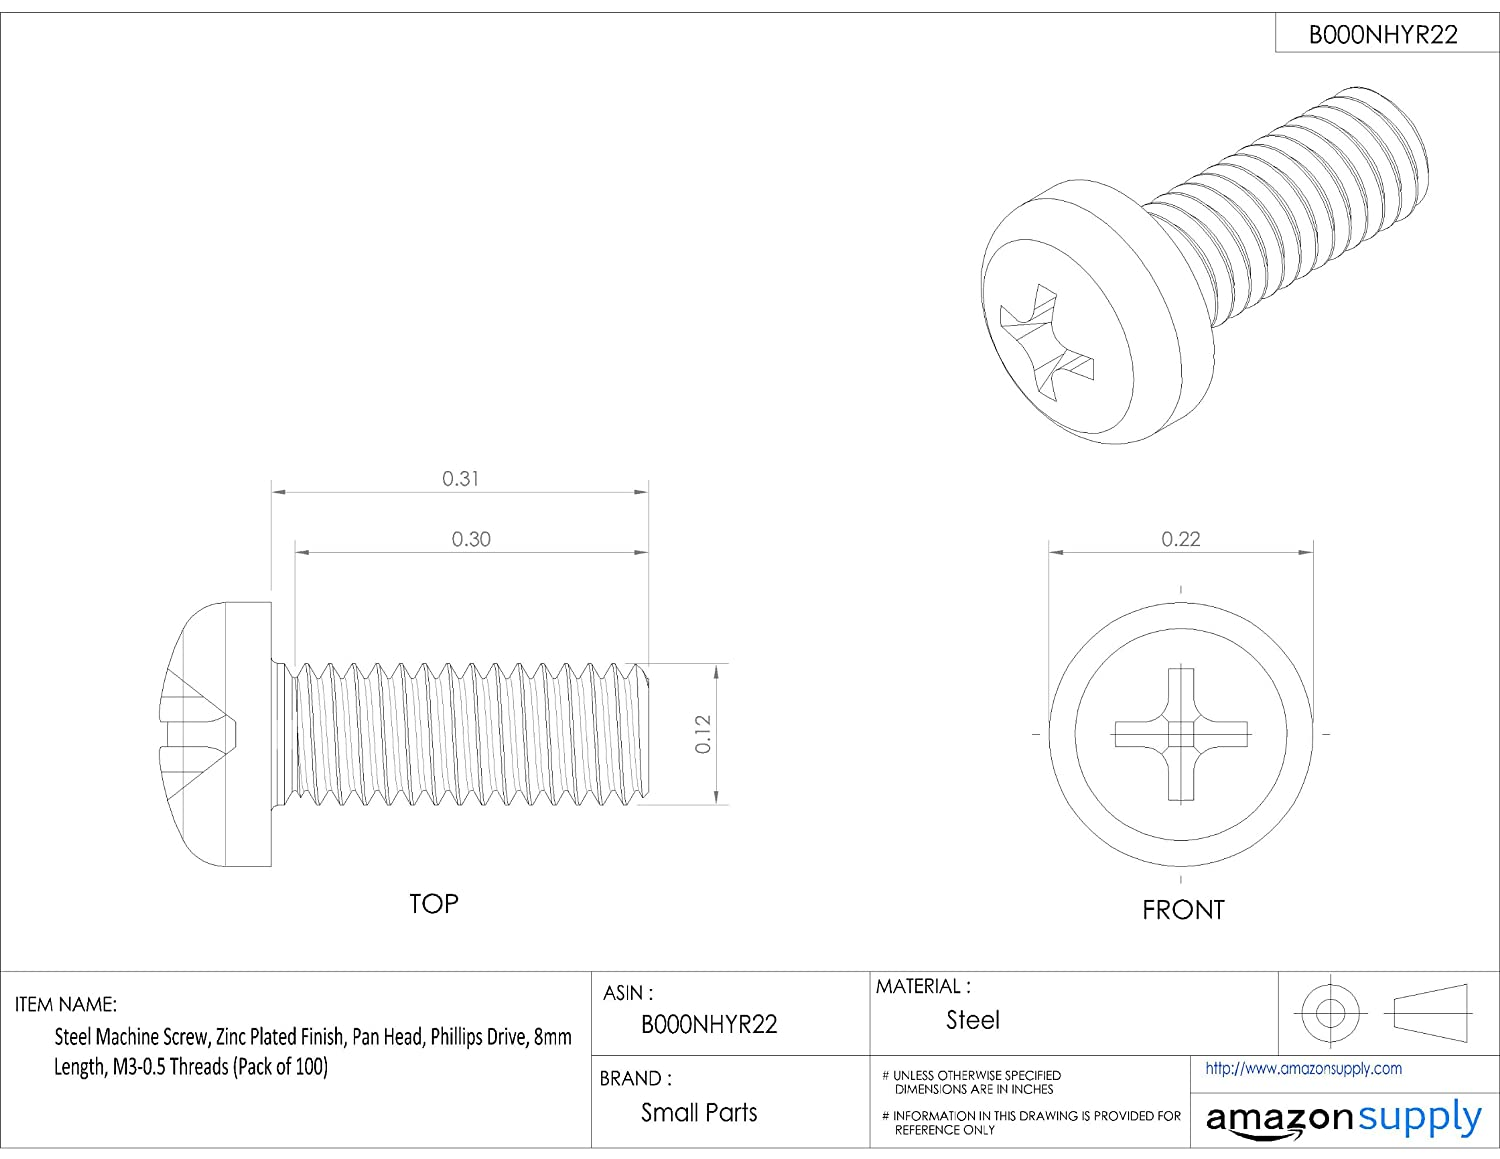 Steel Machine Screw Phillips Drive Pan Head 1//2 Length Zinc Plated Finish Pack of 100 #10-24 Threads